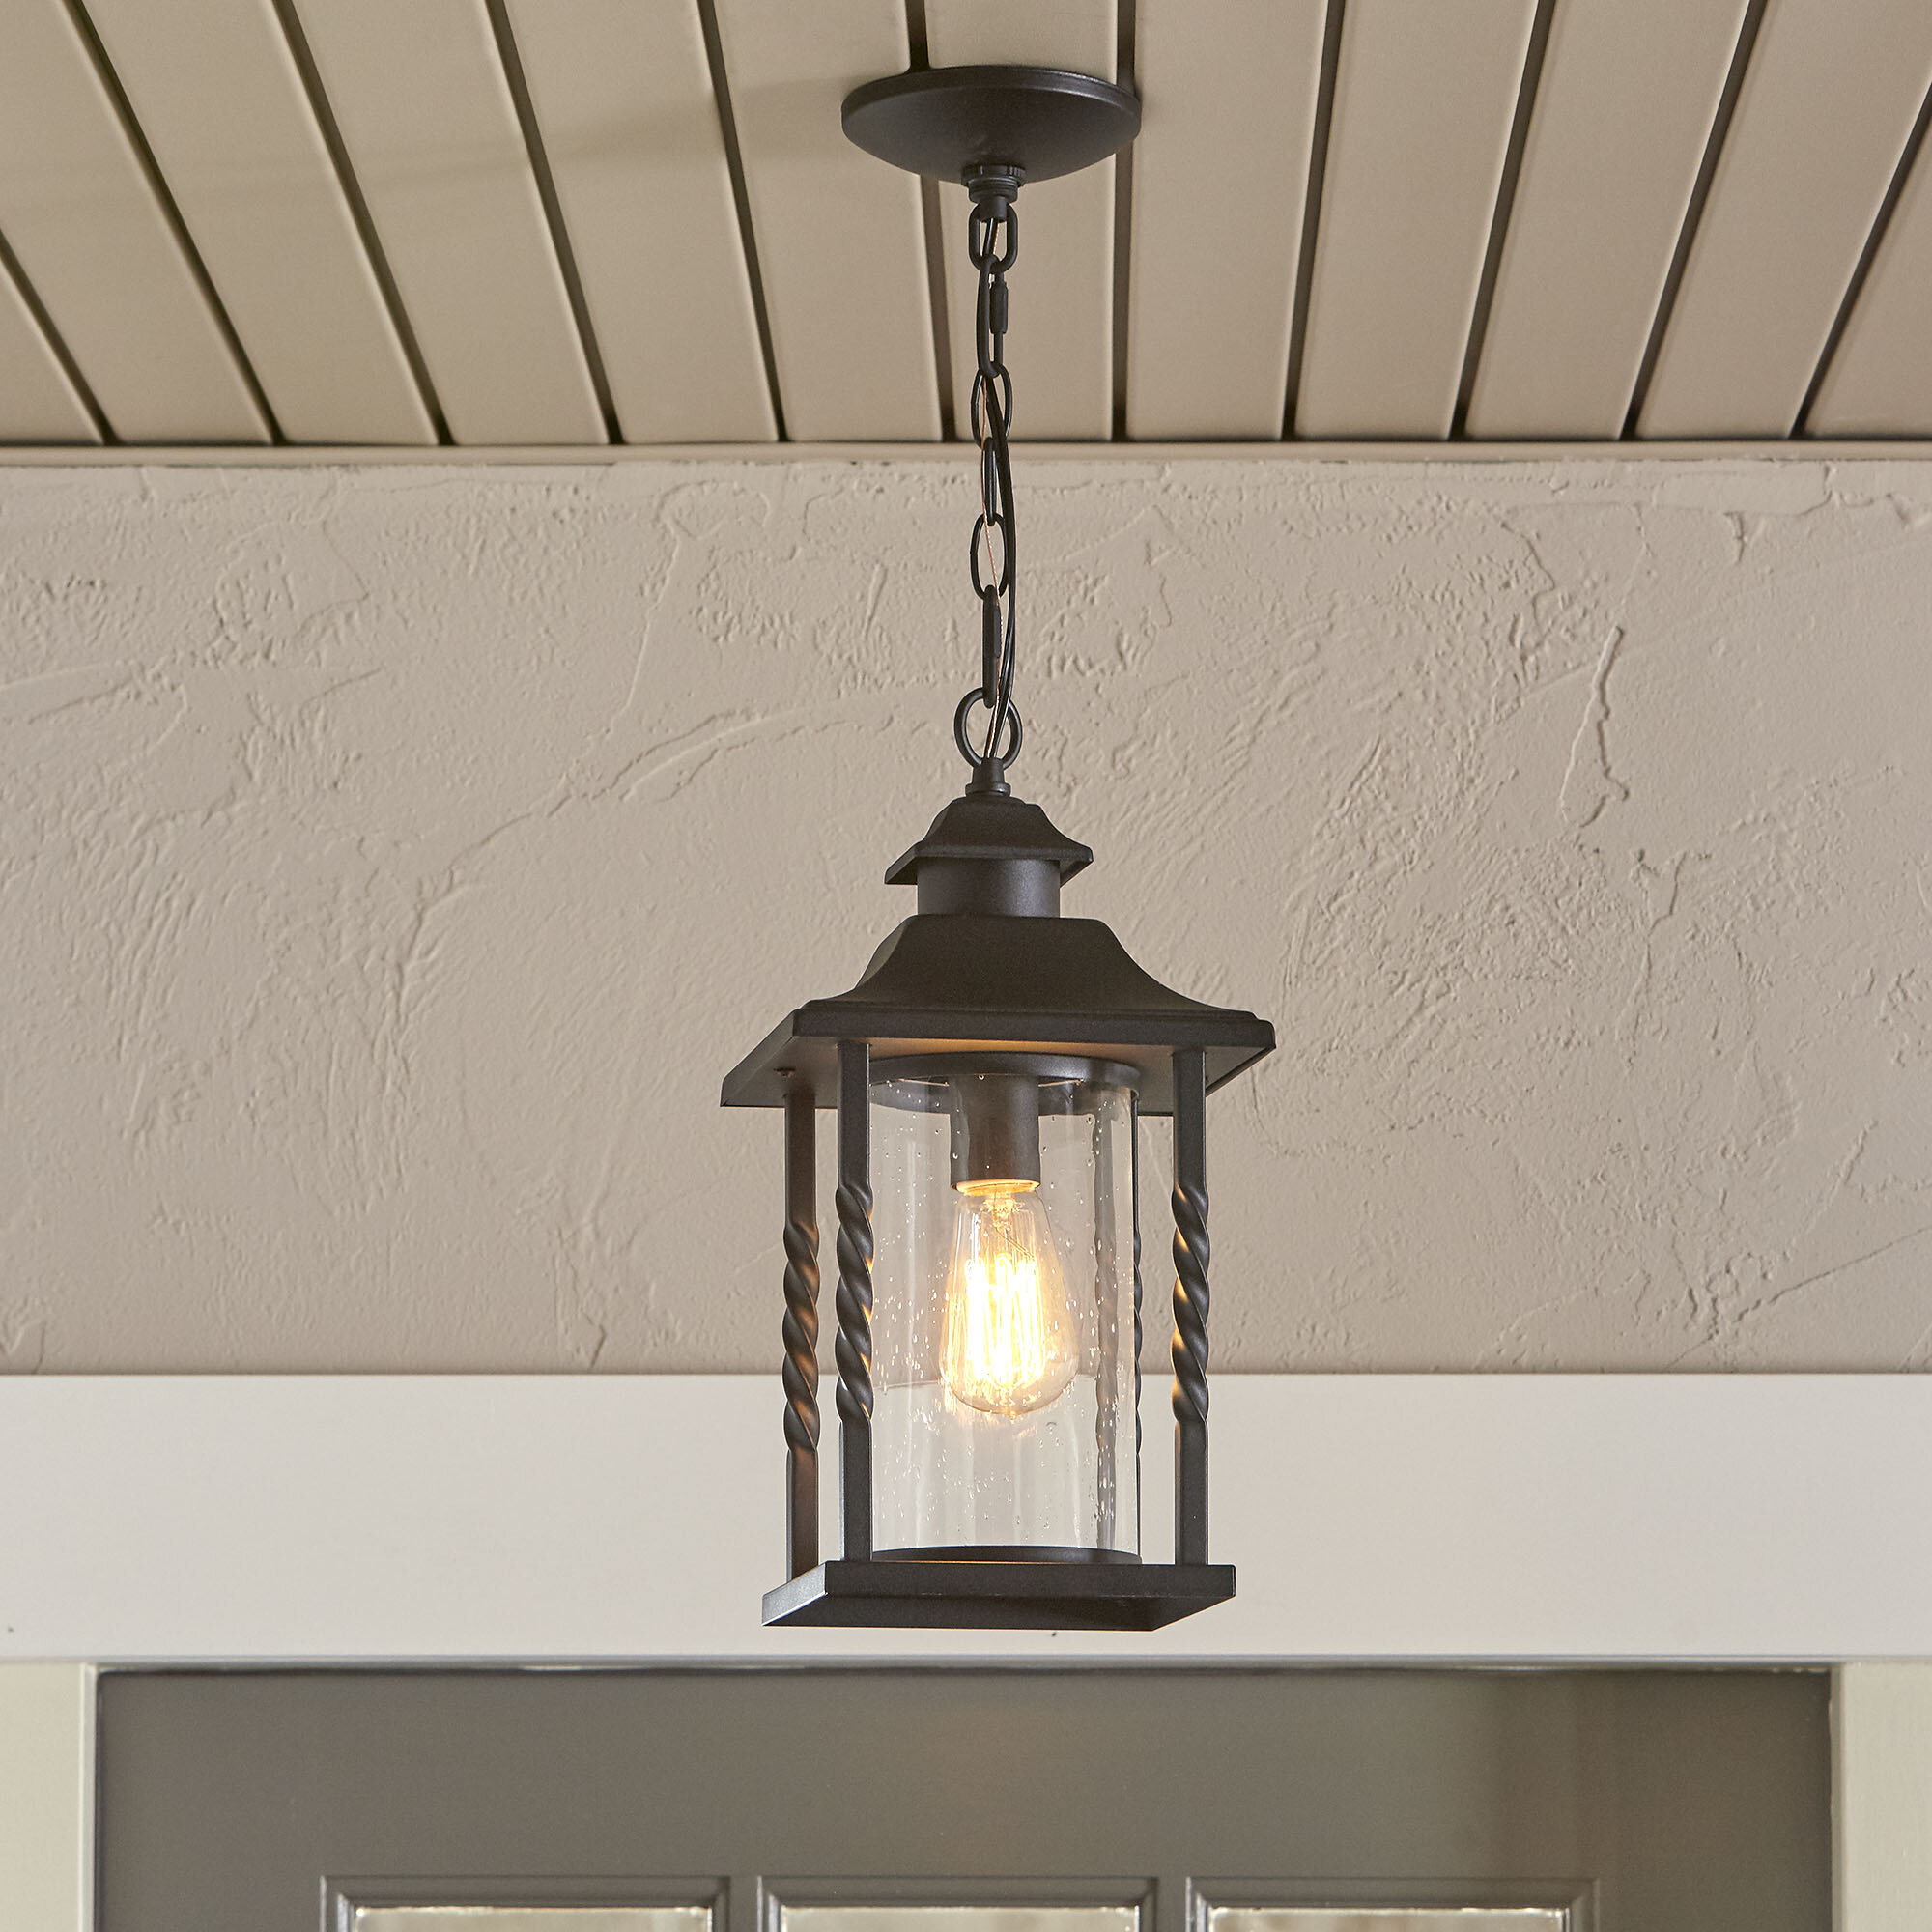 try at electric want lanterns look south collection hanging luxe jul these chandelier traditional style photo copper pm soho hampton home with bronze lantern a